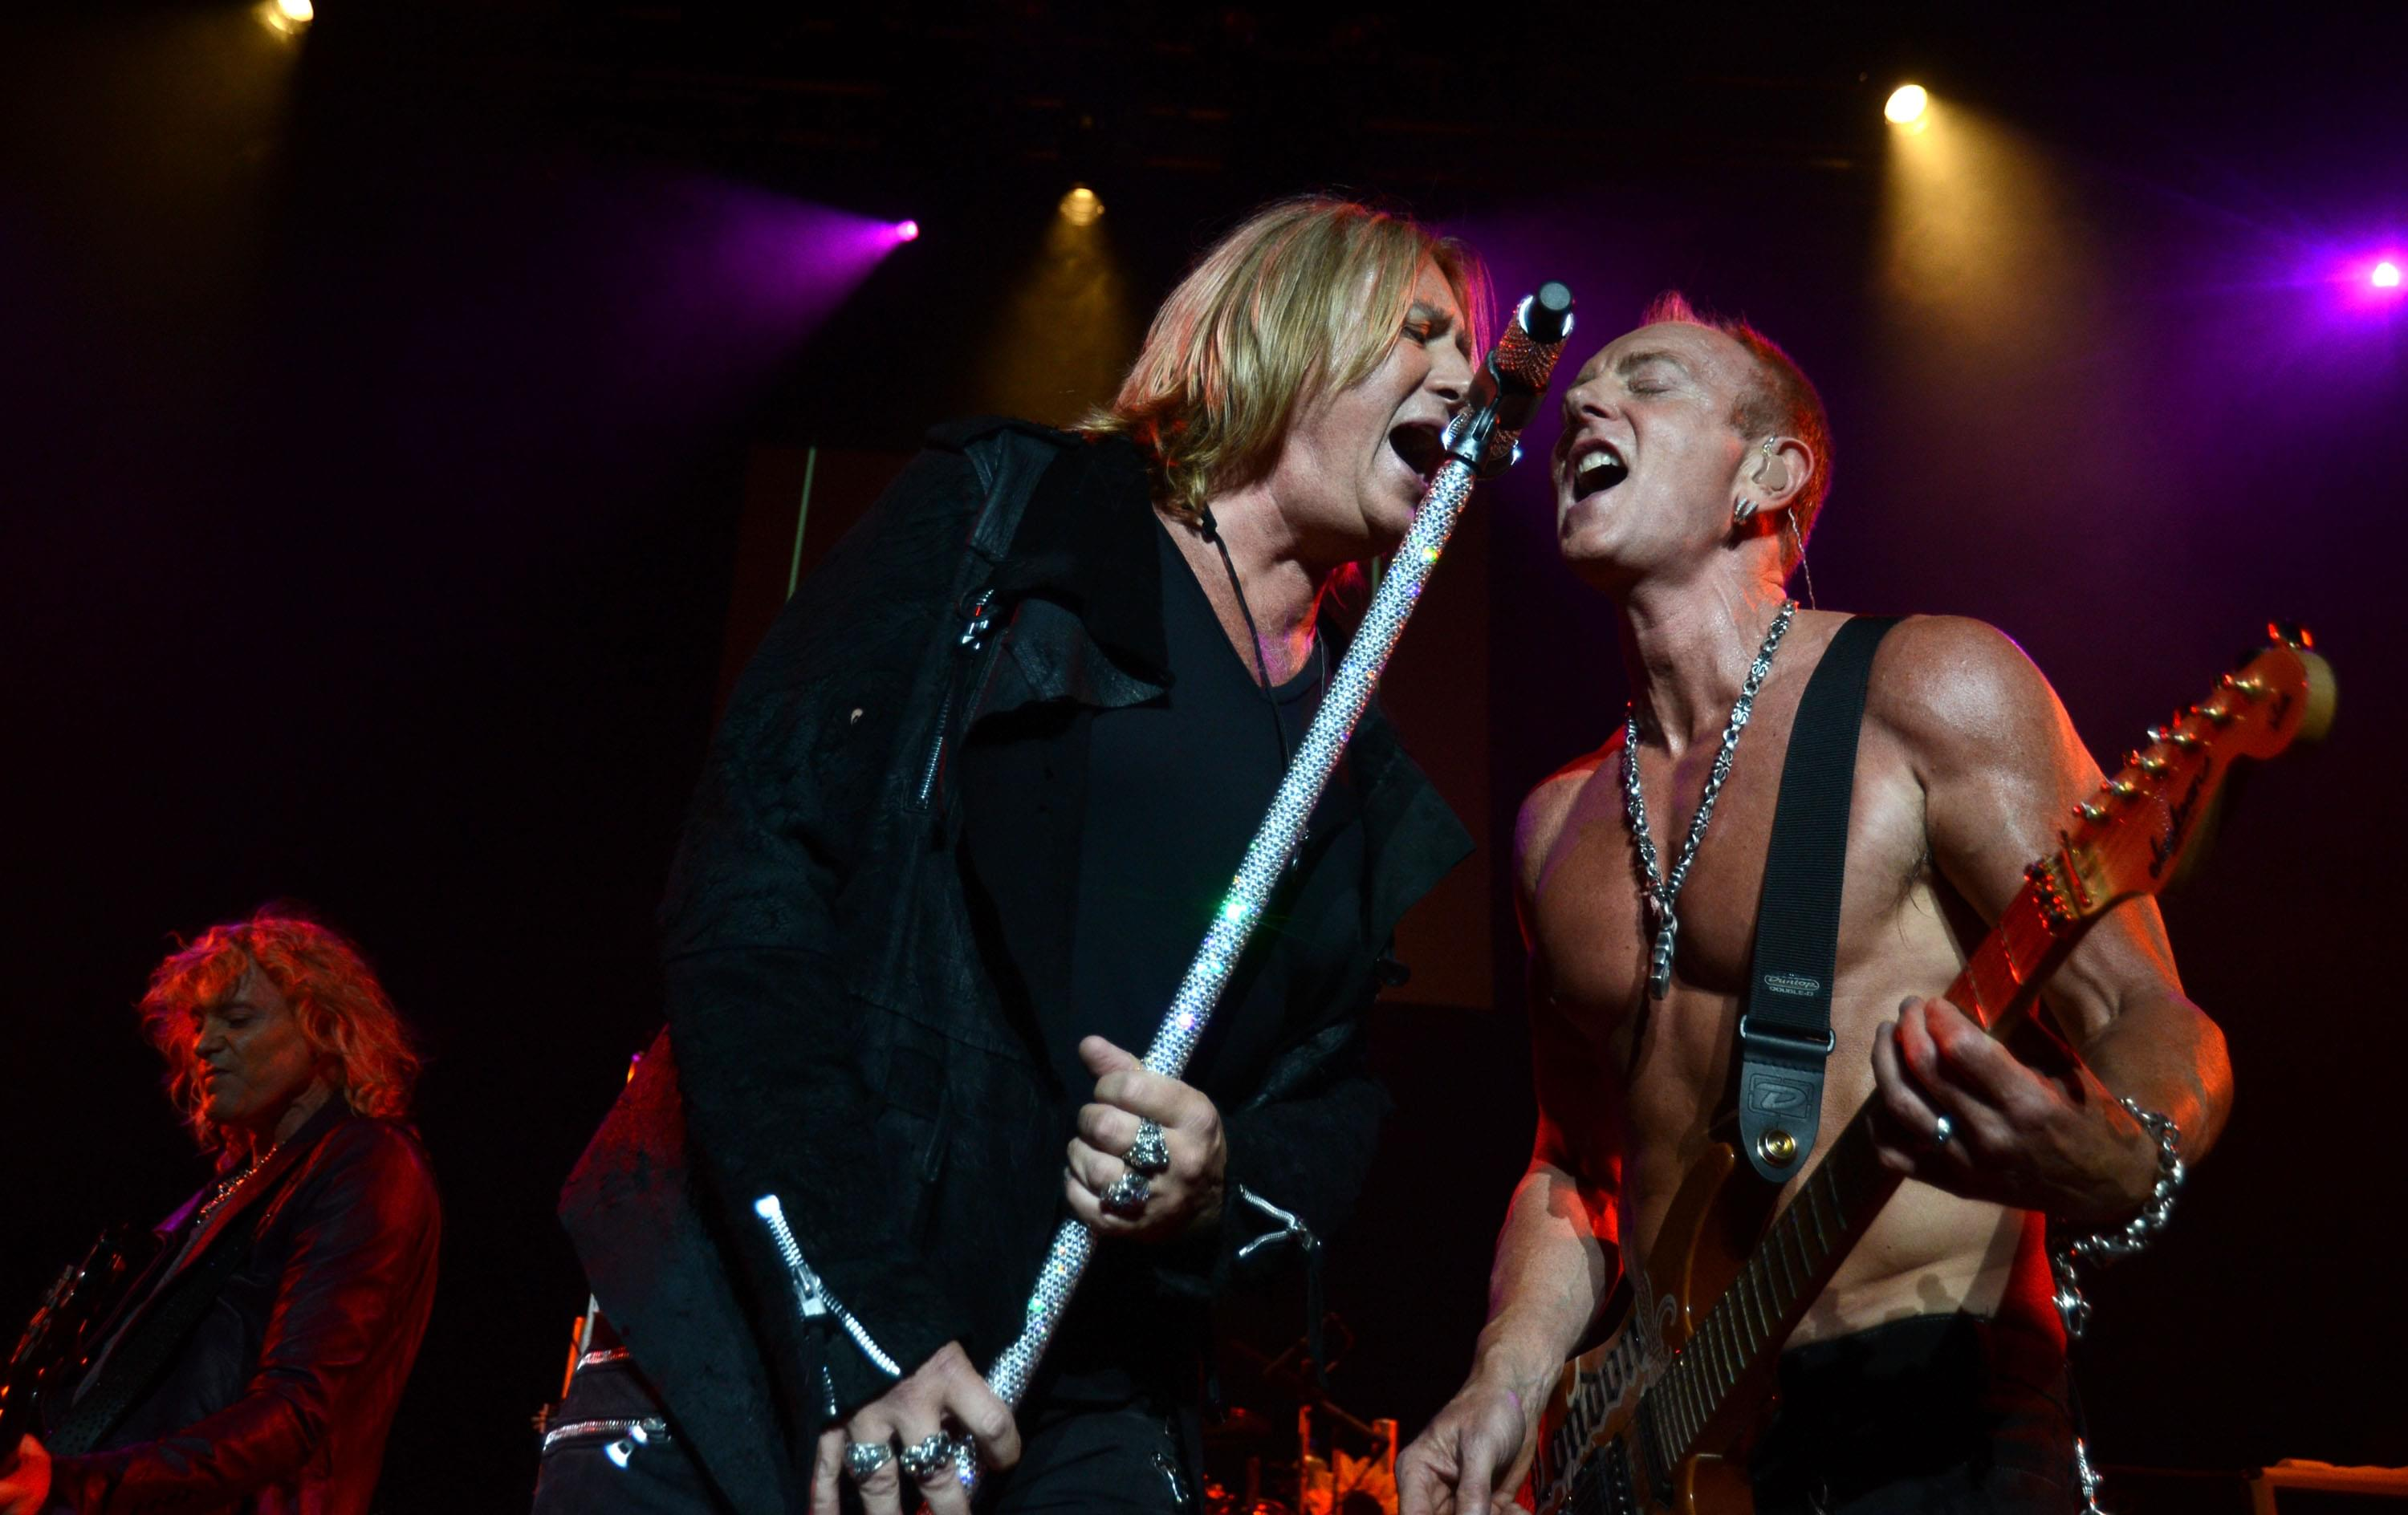 The Def Leppard 'Vault' gets unlocked – the band shares memorabilia, interviews and more